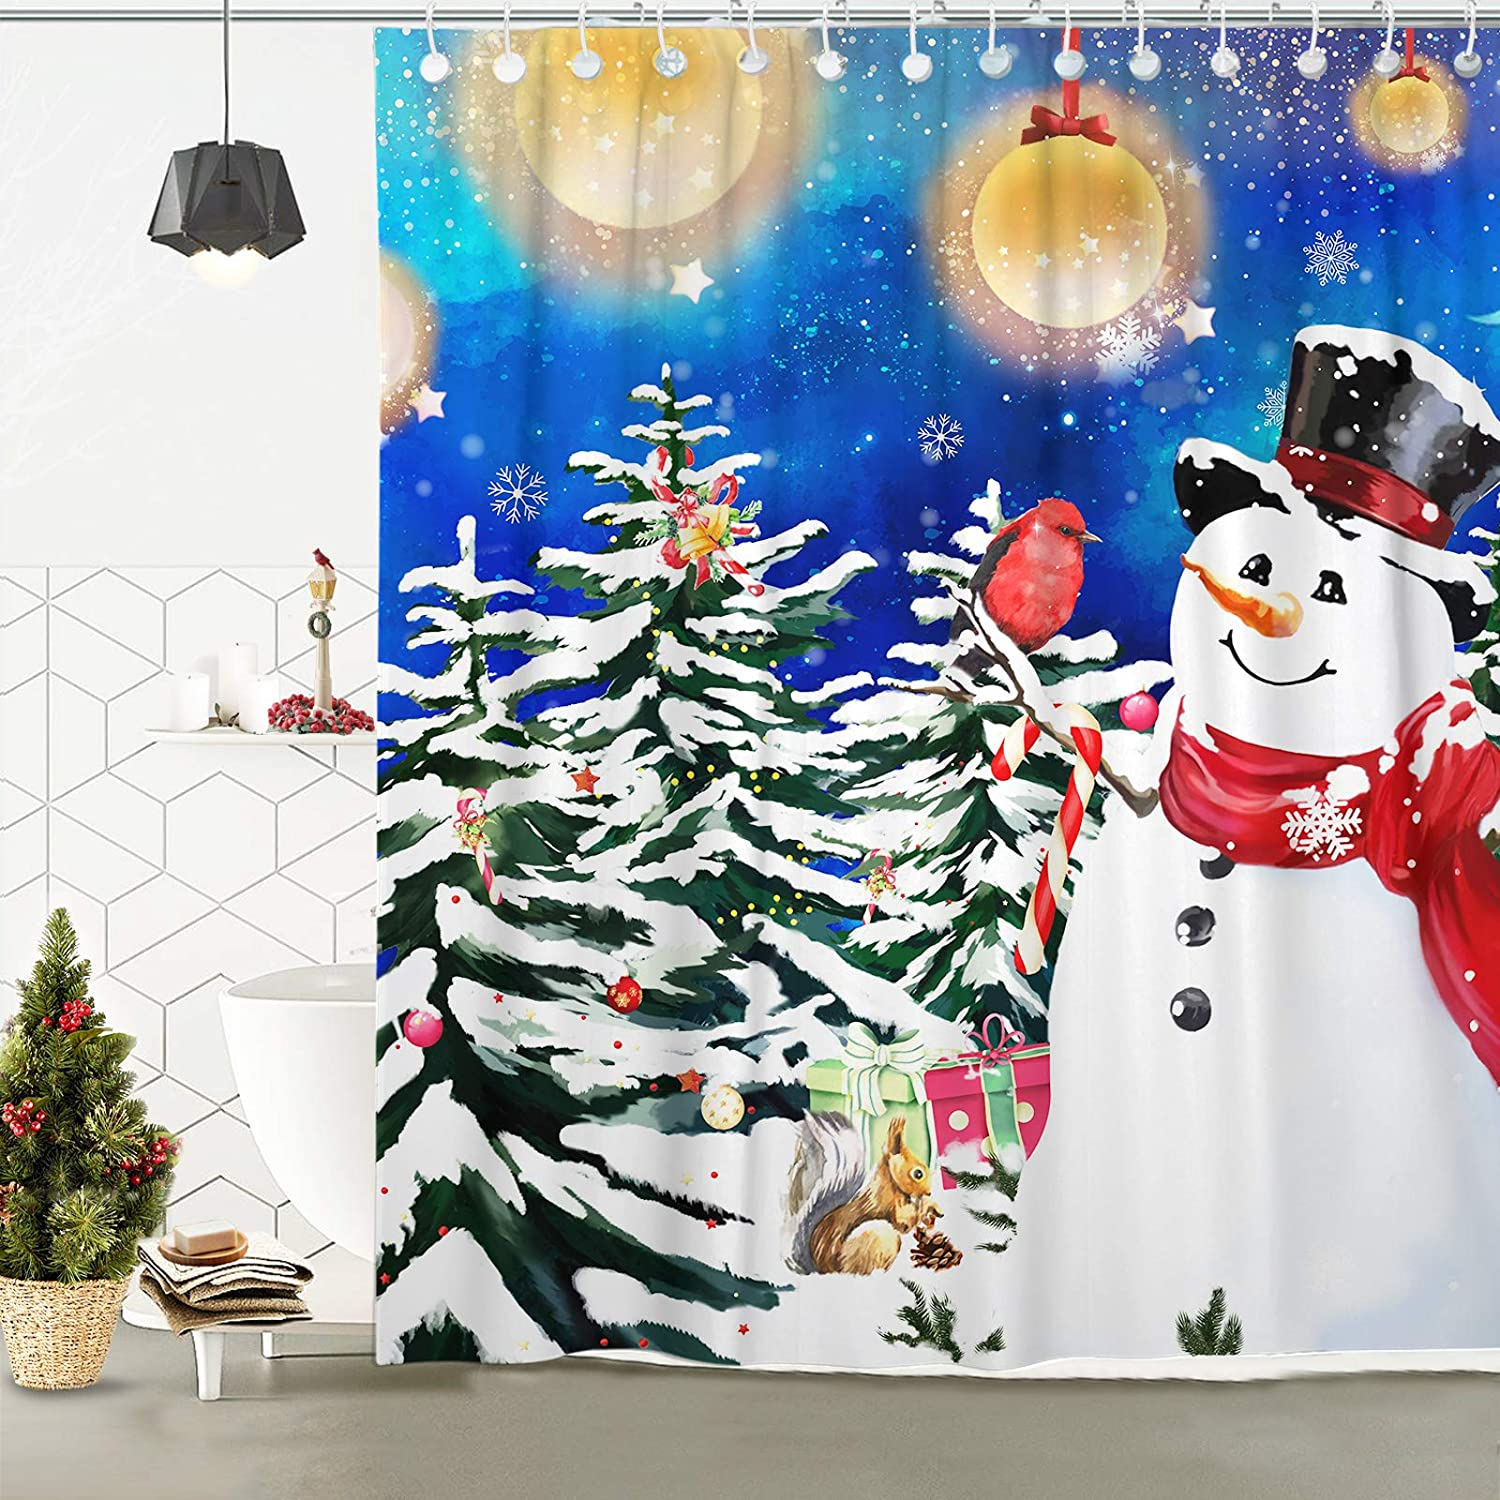 """Hexagram Christmas Shower Curtains Snowman with Fantasy Christmas Bubbles Polyester Winter Bathroom Waterproof Shower Curtains with Hooks,Christmas Decor for Bathroom 72/""""x72/"""""""